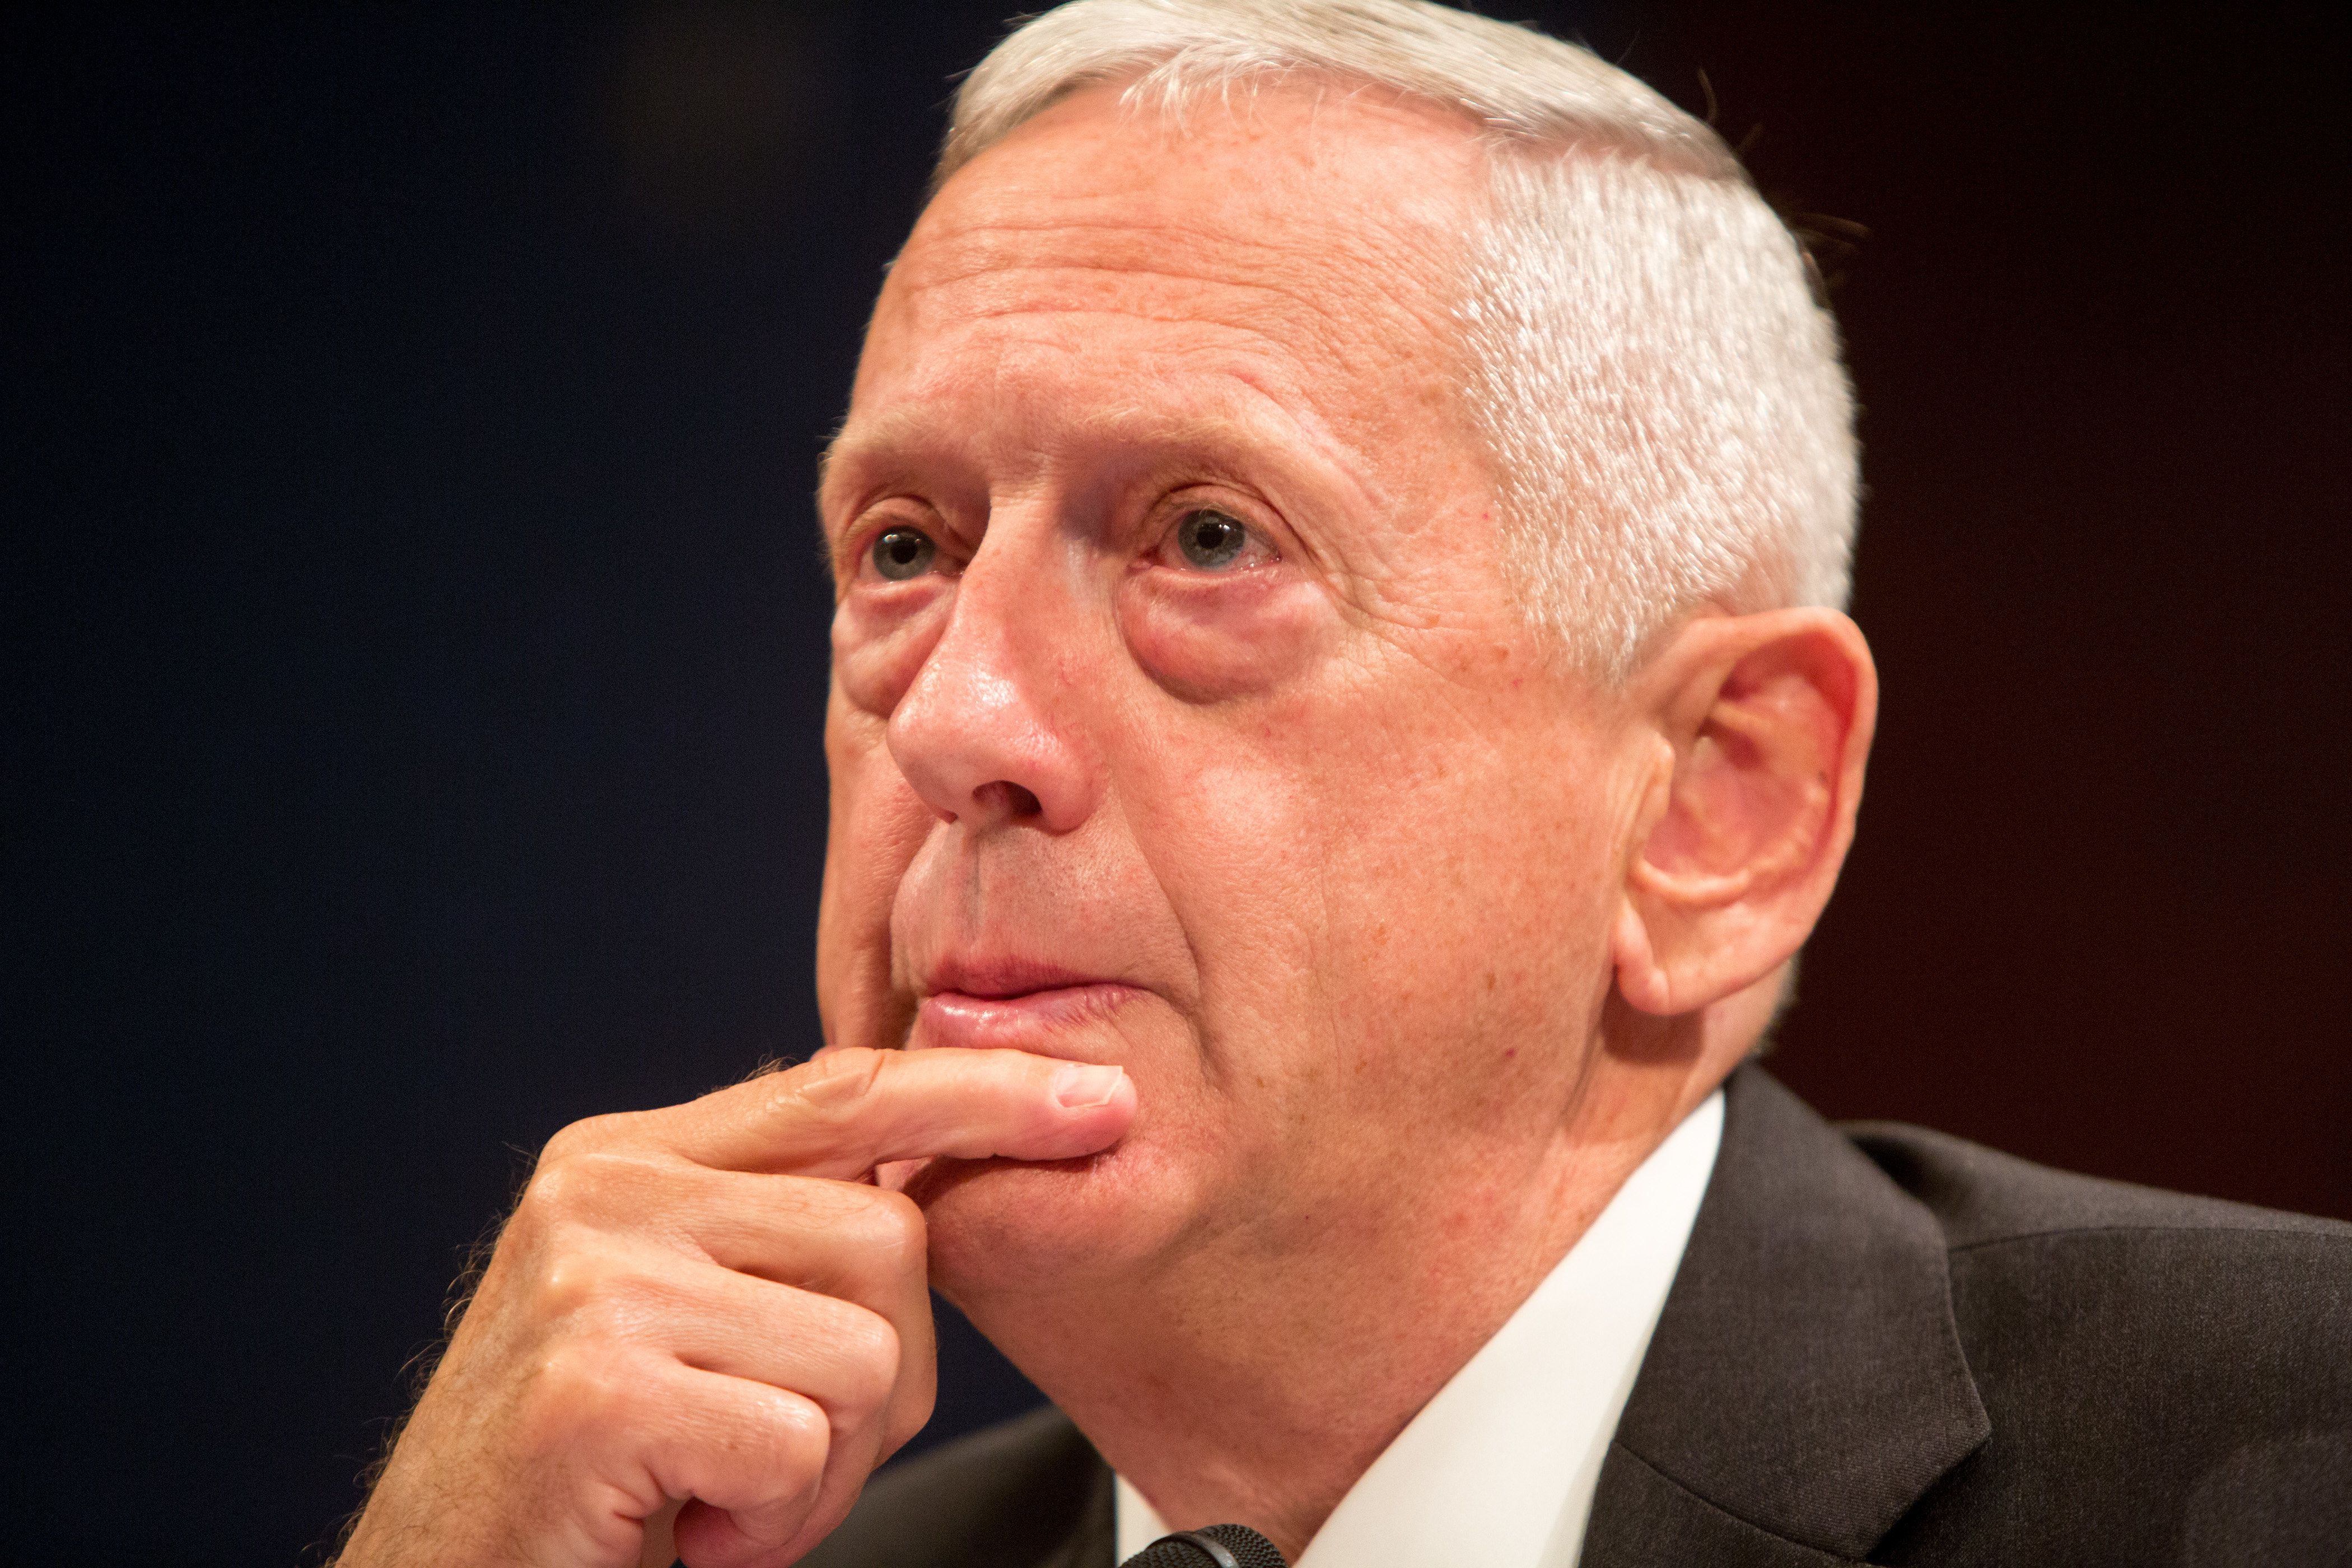 WASHINGTON, DC - SEPTEMBER 18, 2014:  Retired Marine Corps Gen. James 'Jim' Mattis, former commander of the U.S. Central Command testifies before the House (Select) Intelligence Committee on 'Threats Posed by ISIL (Islamic State of Iraq and the Levant), AQ (al Qaeda), and Other Islamic Extremists' on Capitol Hill in Washington D.C., September 18, 2014.  Yesterday the House approved President Obama's plan to train Syrian rebels to counter ISIL. (Photo by Allison Shelley/Getty Images)